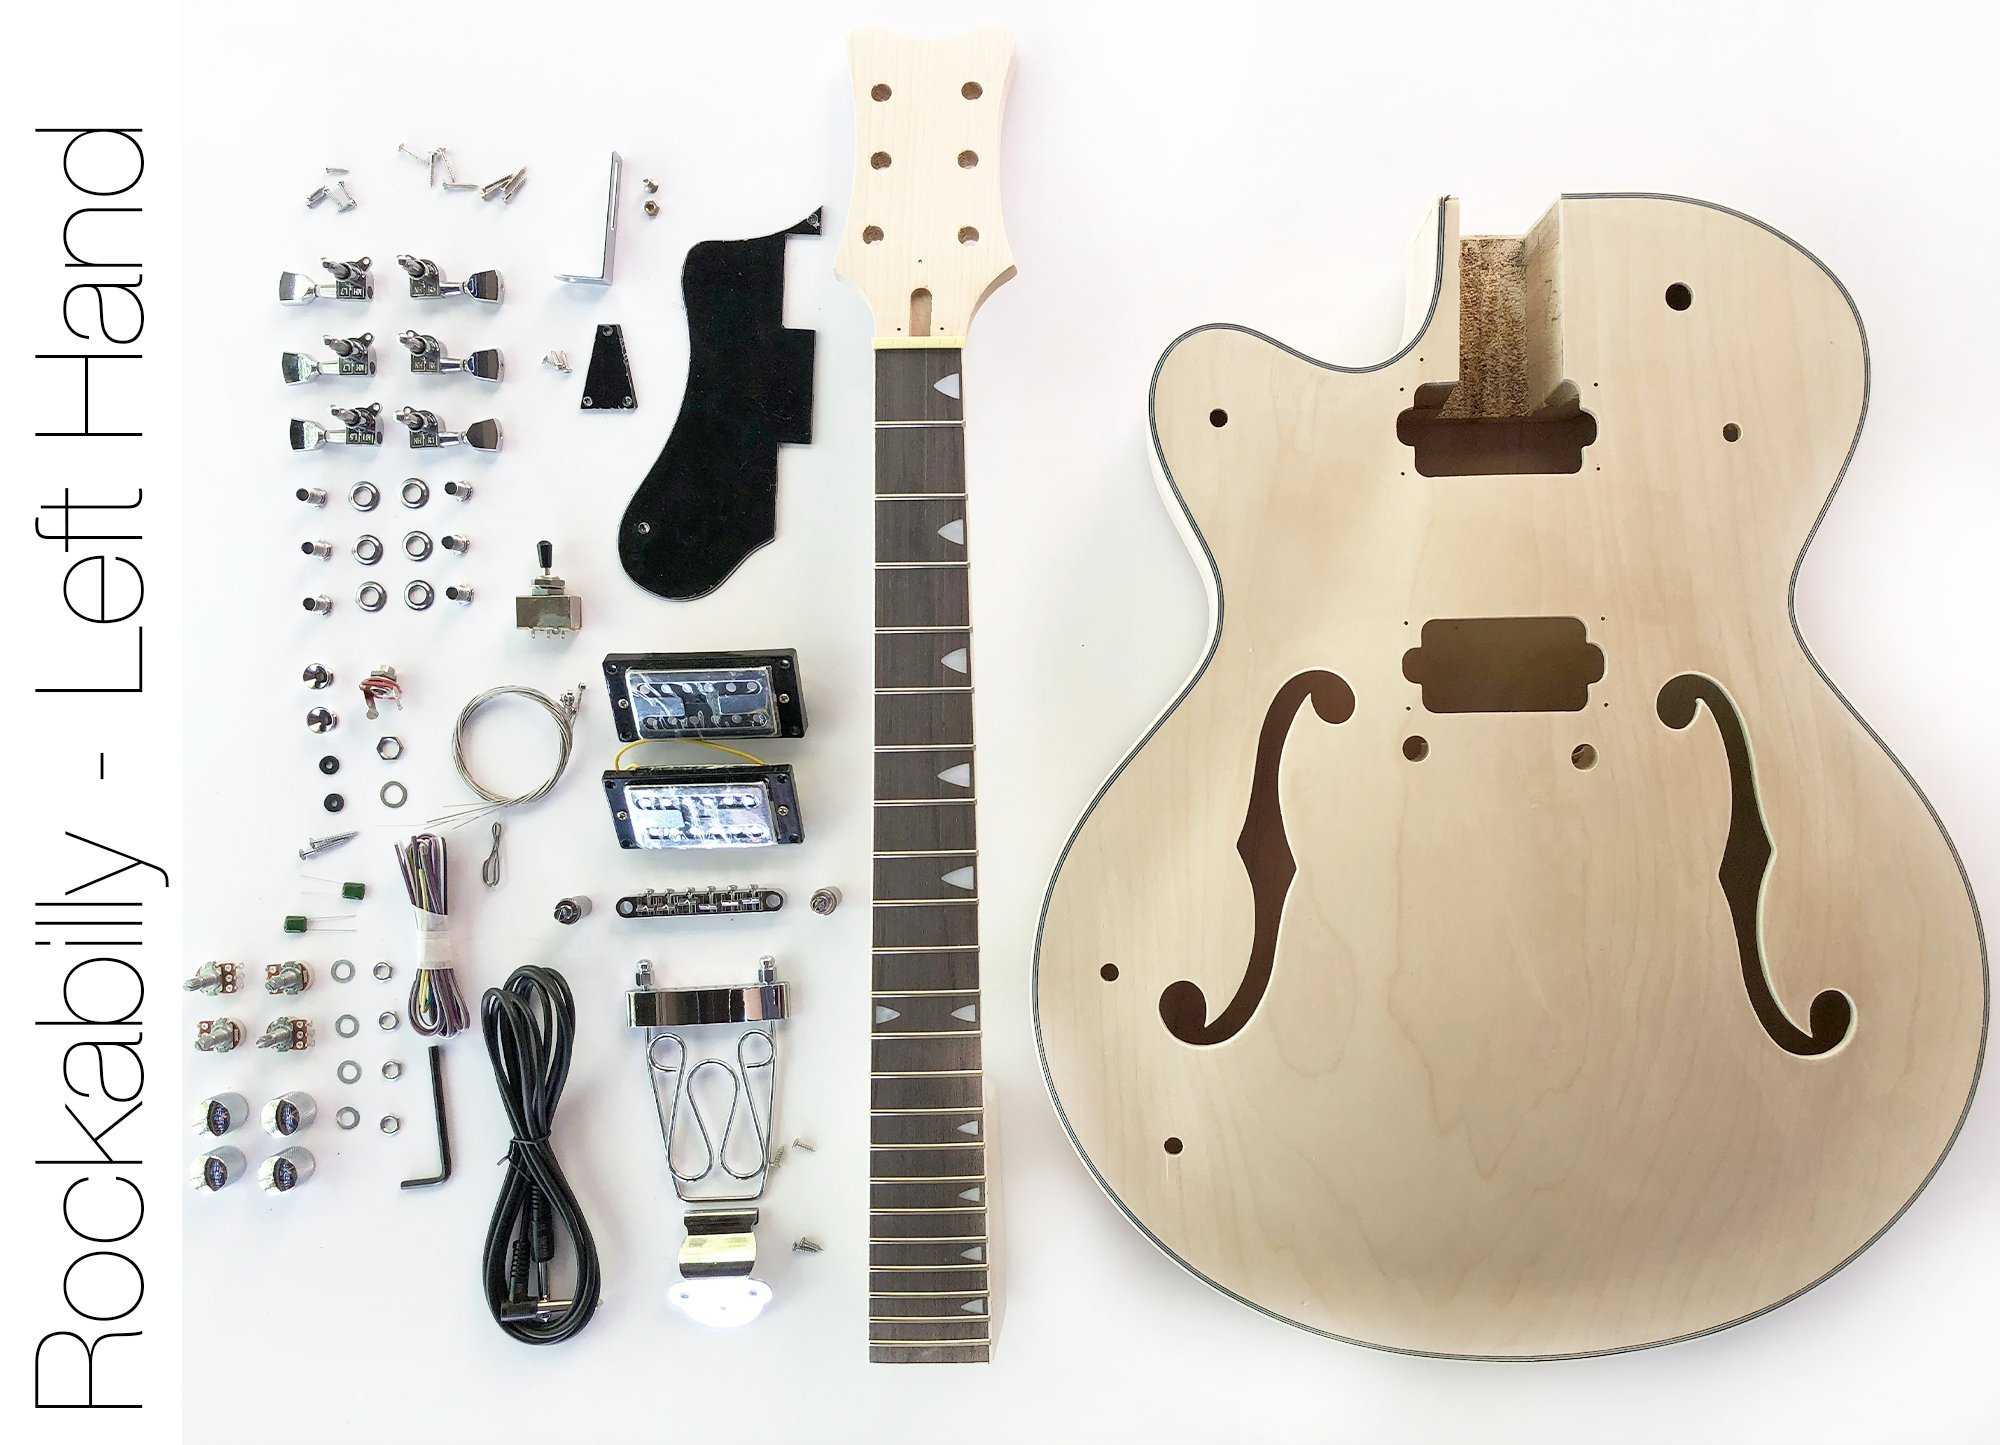 Cheap DIY Electric Guitar Kit - Left Hand Hollow Body Build Your Own Guitar Kit Black Friday & Cyber Monday 2019